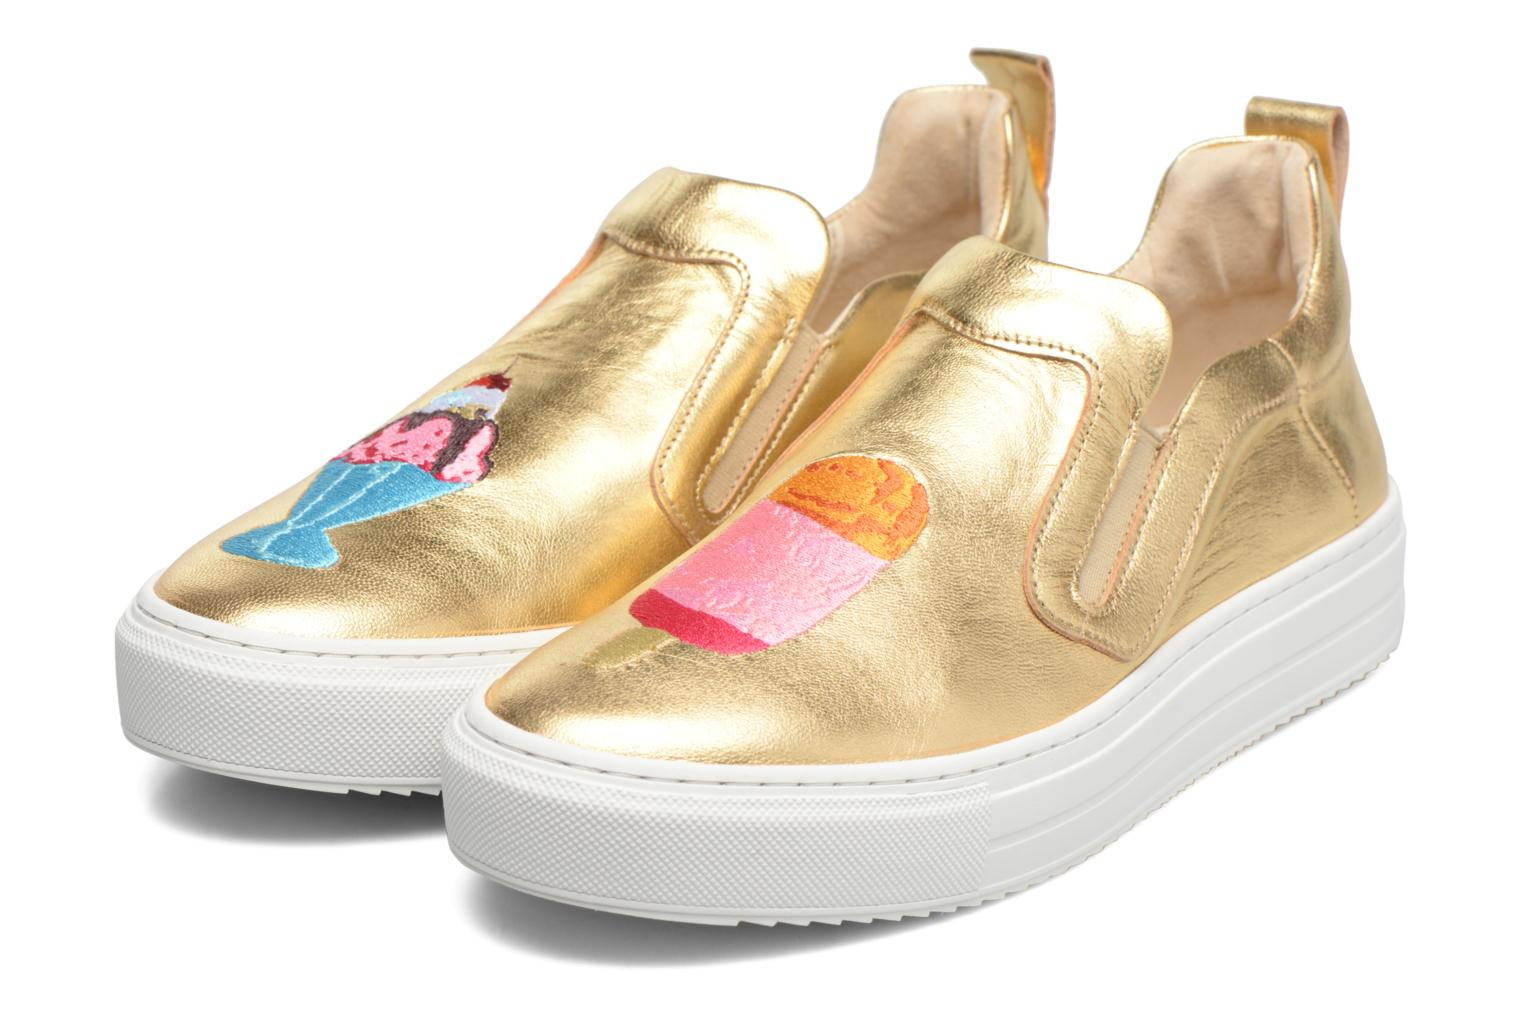 Sneaker Apologie Ice Cream gold/bronze 3 von 4 ansichten